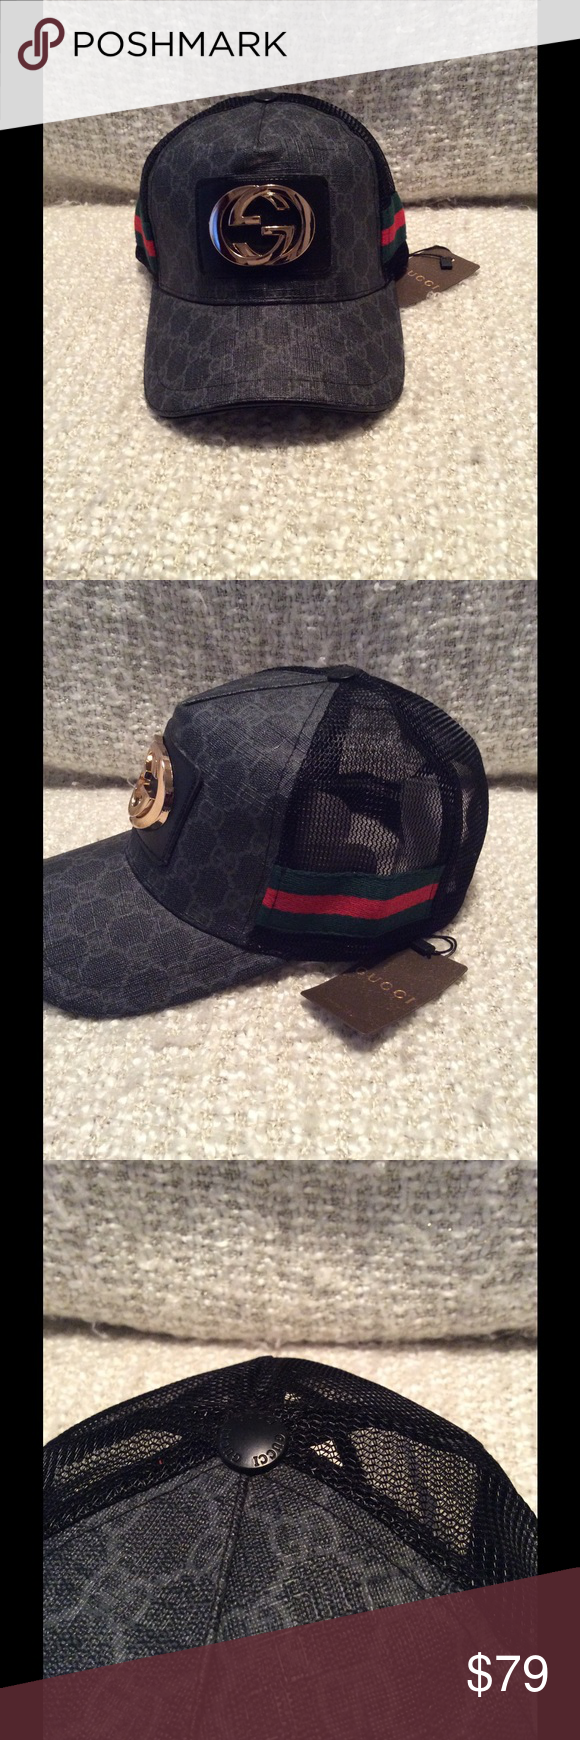 8afe16139ca1dd Gucci hat Gucci hat new with tag Gucci Accessories Hats | wilds ...